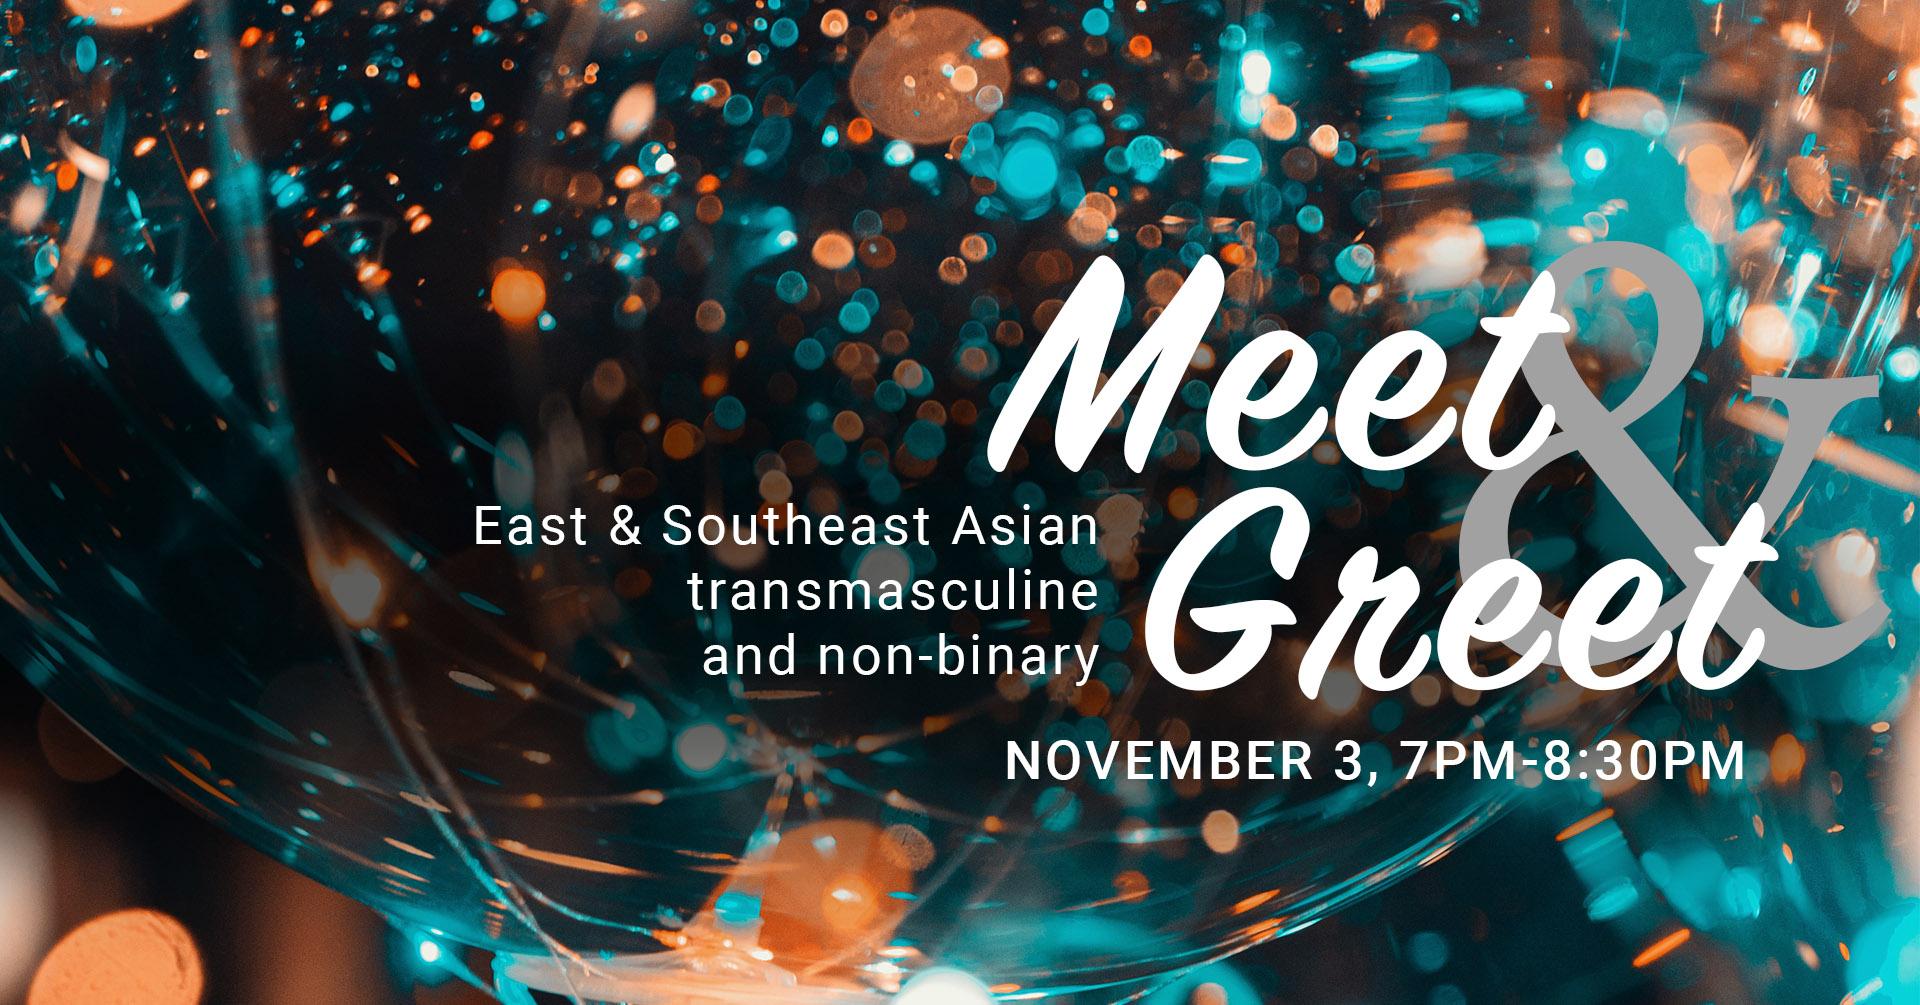 poster for asian transmasc meet greet